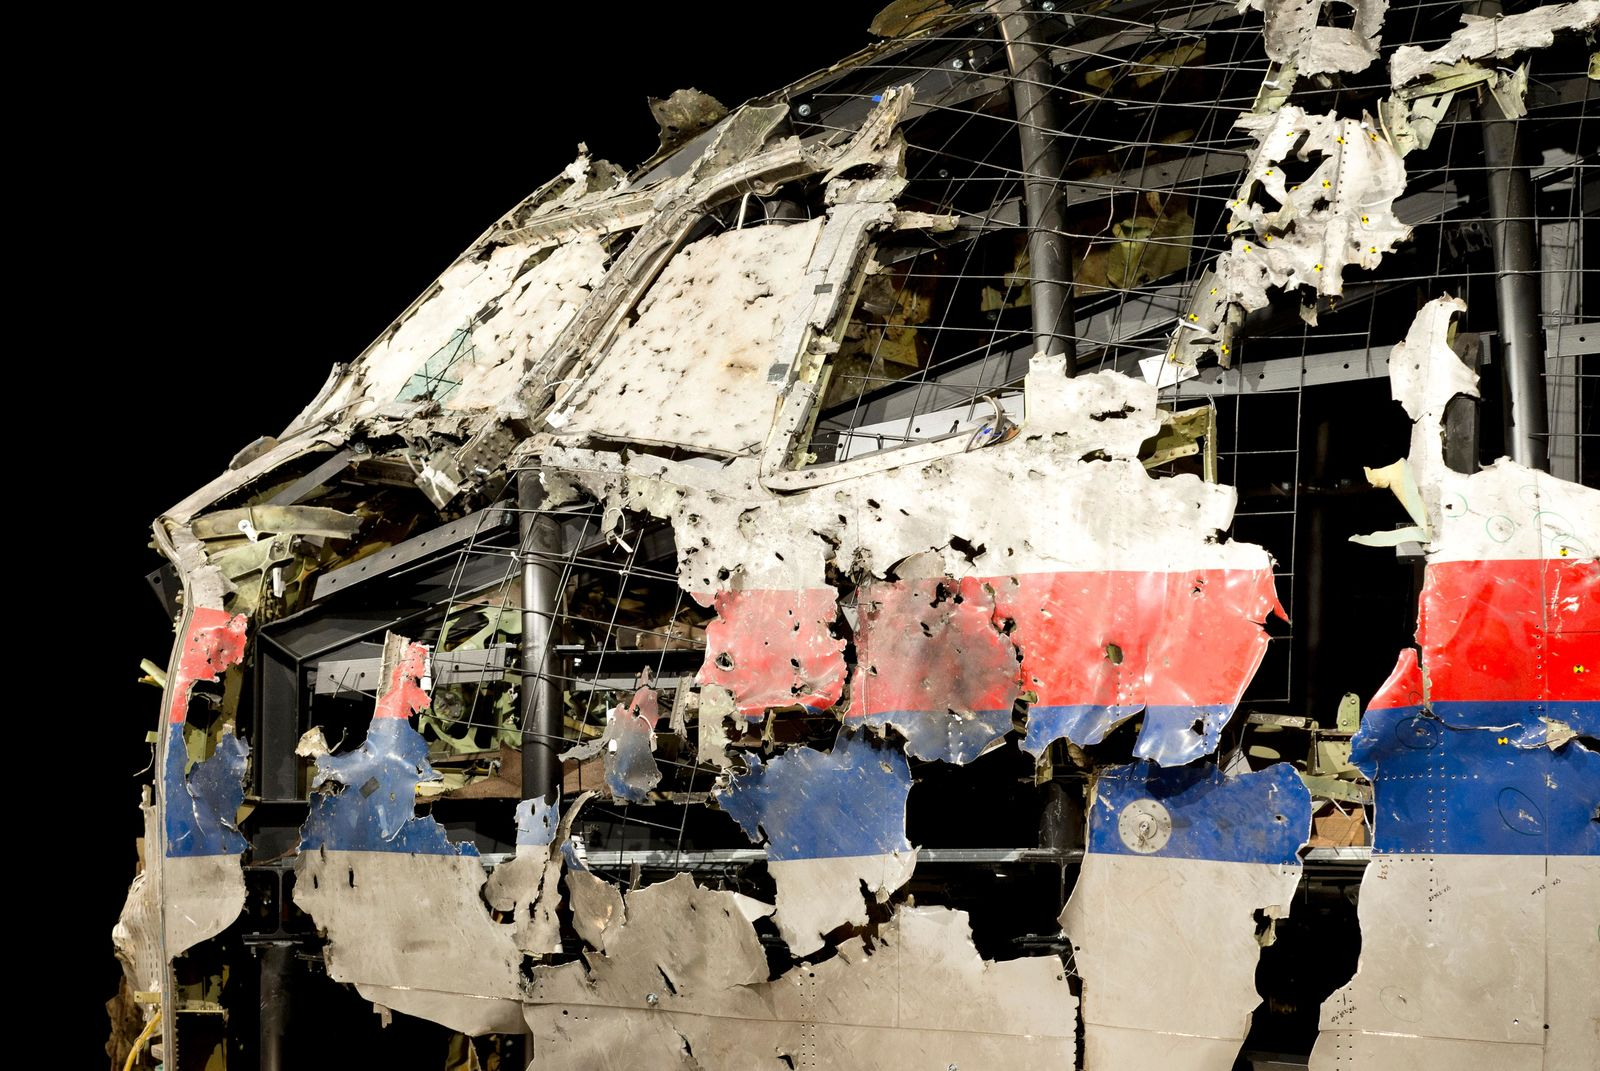 FIlE - In this file photo dated Tuesday, Oct. 13, 2015, the reconstructed cockpit of Malaysia Airlines Flight 17 plane is displayed before a news conference by the Dutch Safety Board in Gilze-Rijen, Netherlands. (AP Photo/Peter Dejong, FILE)